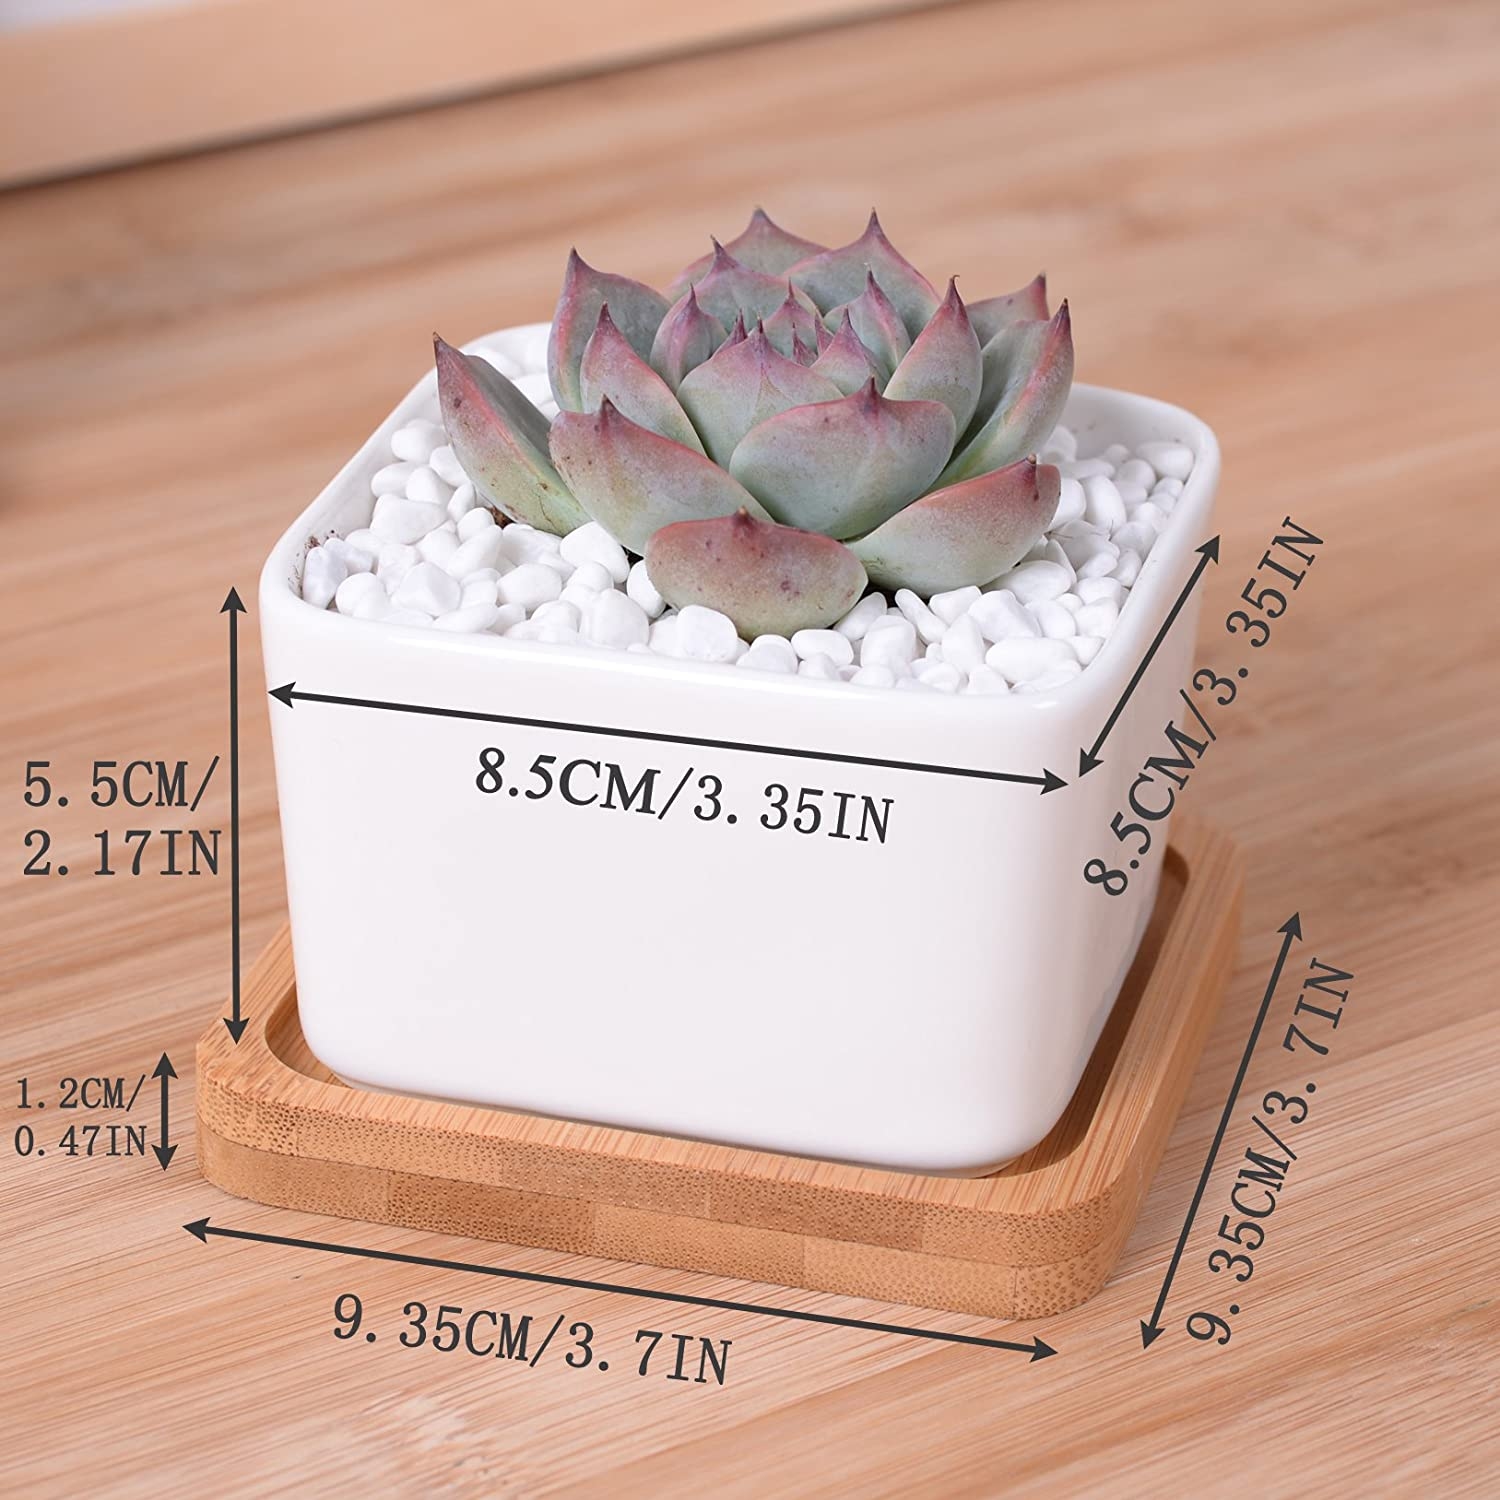 Amazon.com: ROSE CREATE 4 Pcs 3.5 Inches White Bonsai Pots with ...